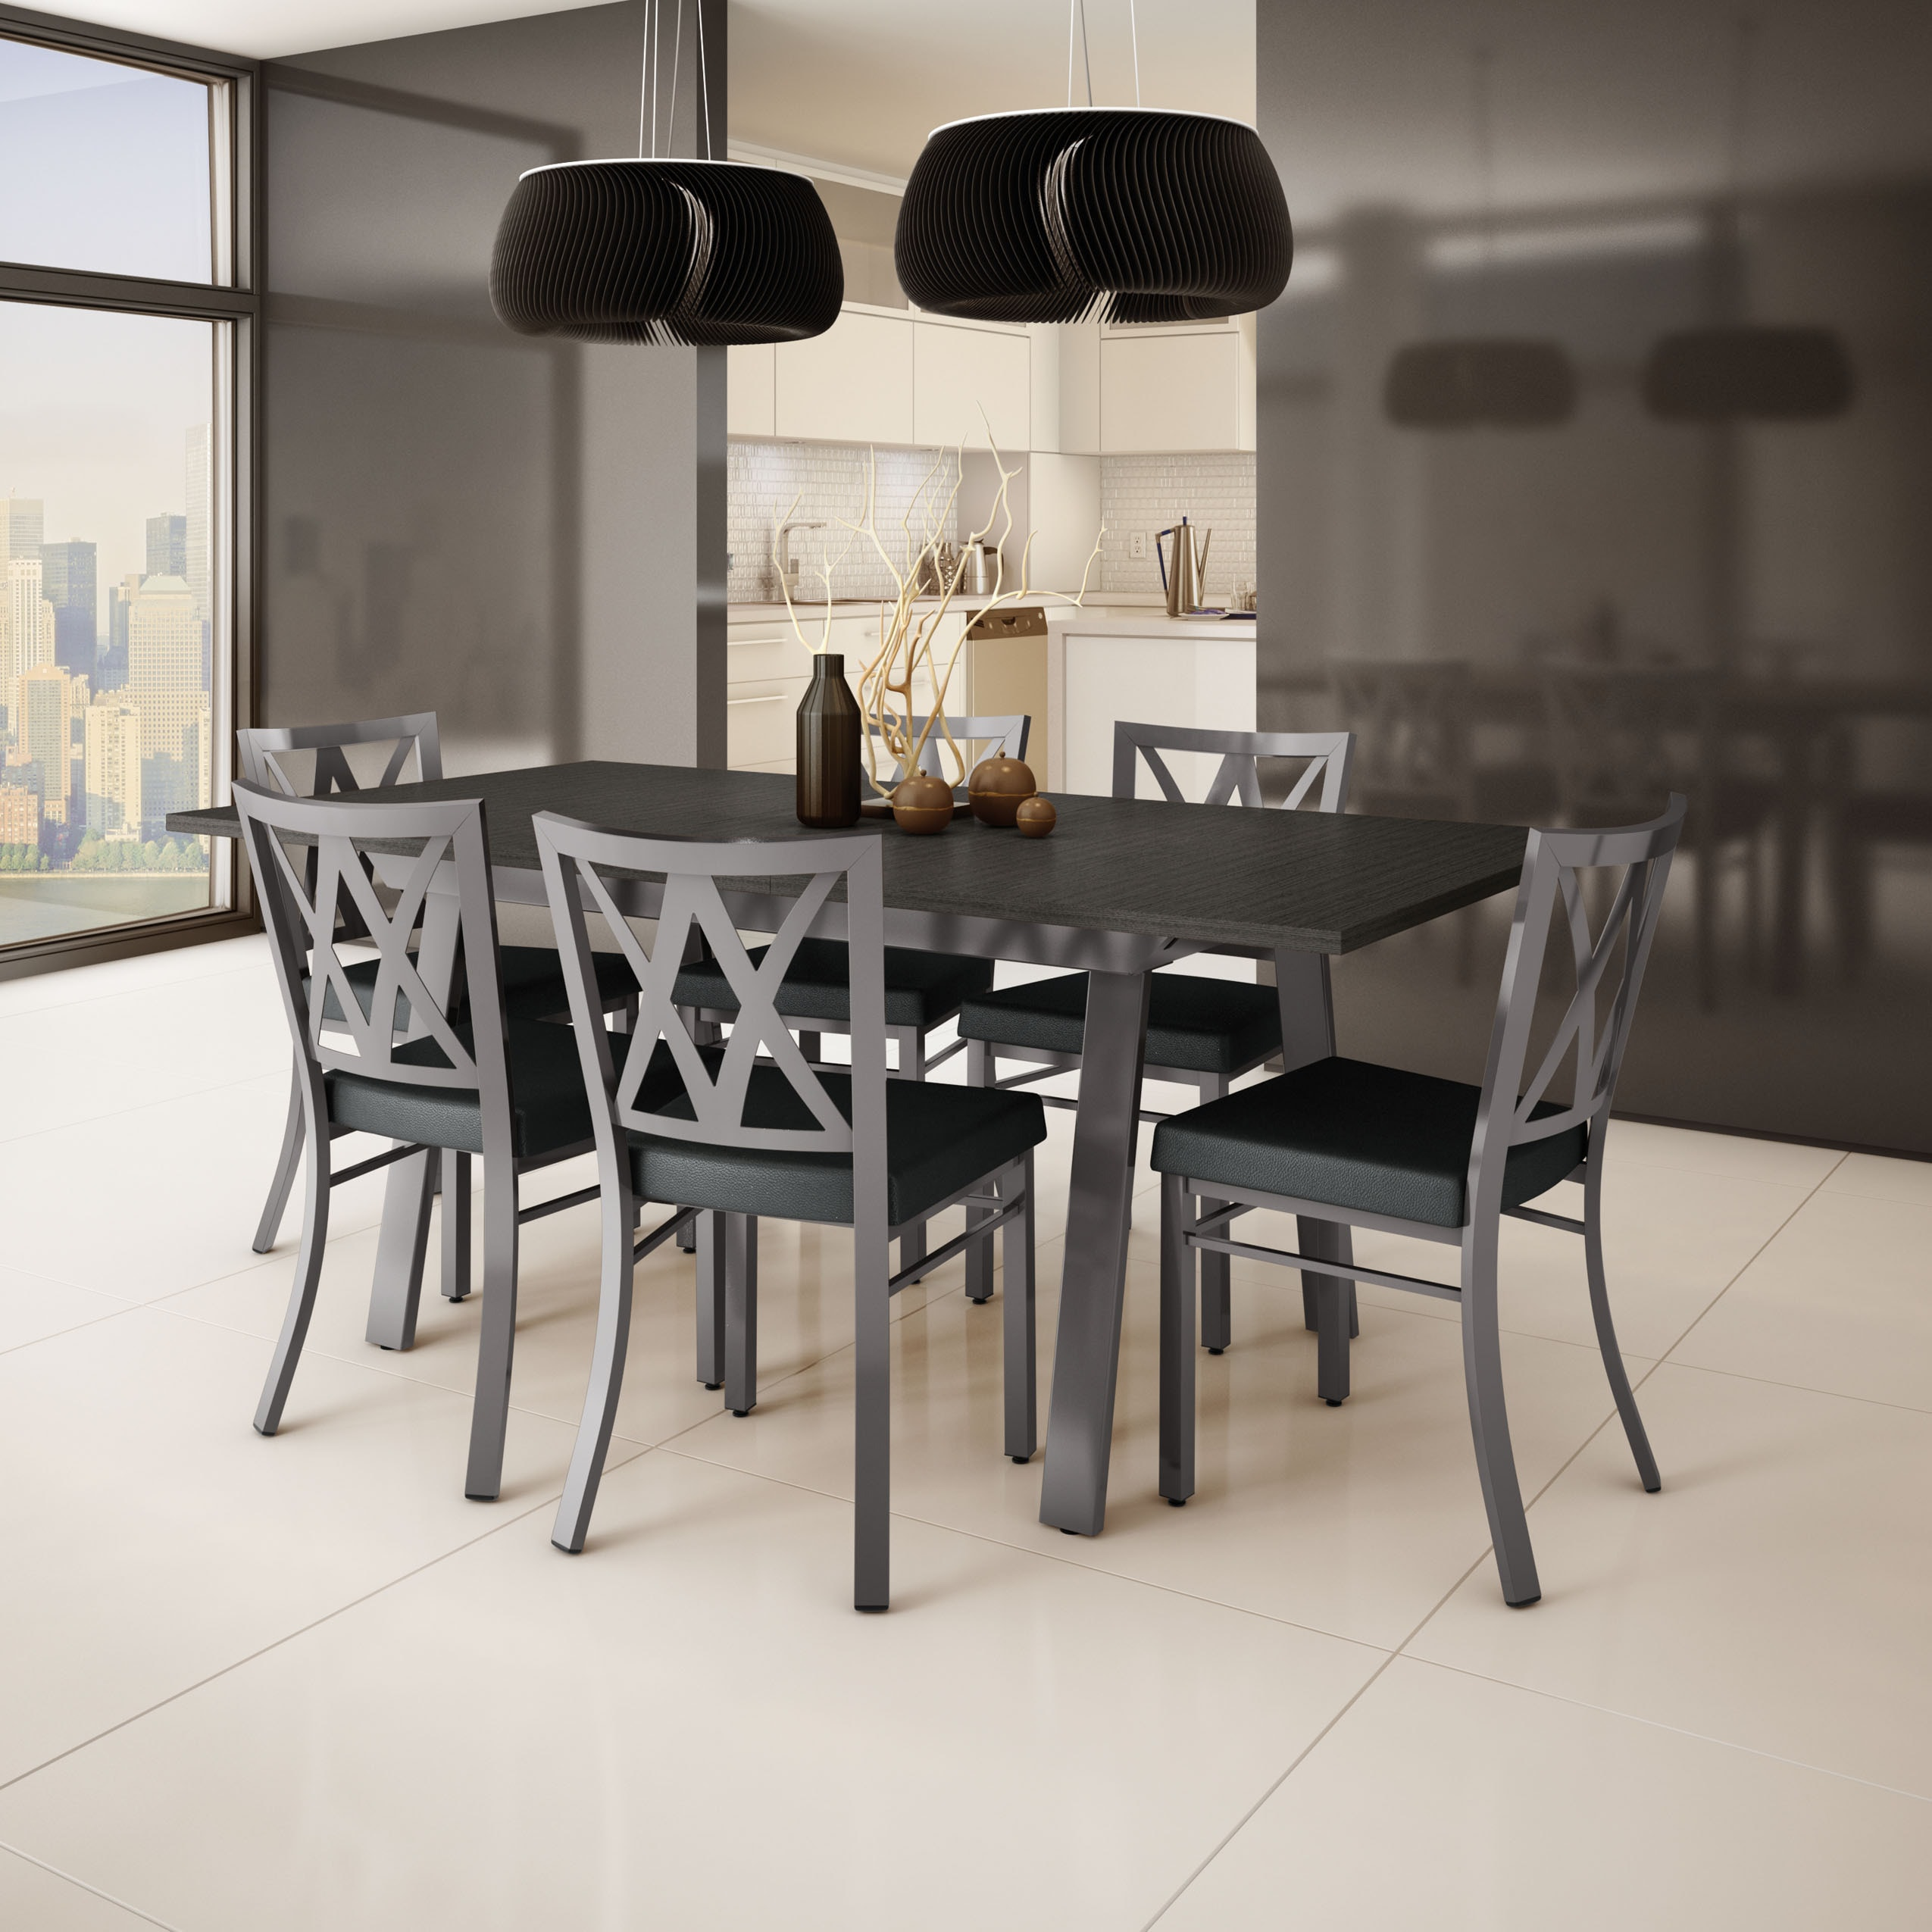 Amisco 'Washington' Metal Chair And 'Drift' Table Dining